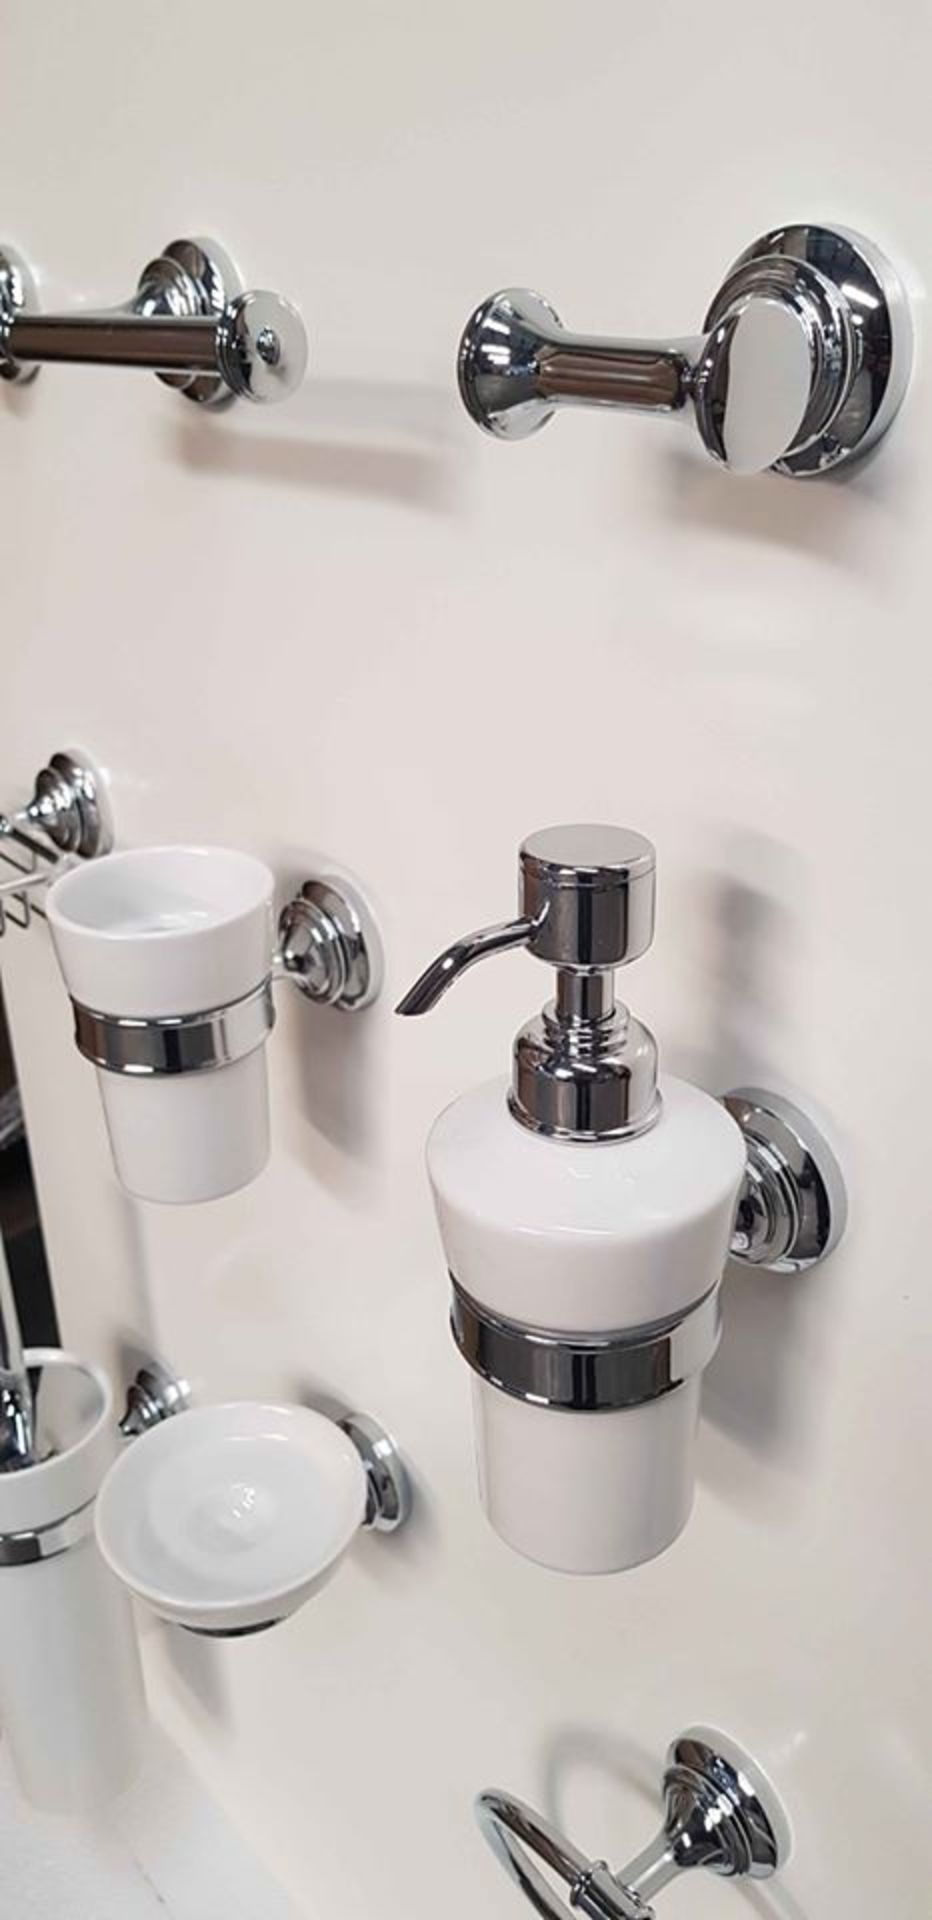 Lot 13 - Transition 12 Piece, very high quality, bathroom accessory set in polished chrome & ceramic finish.